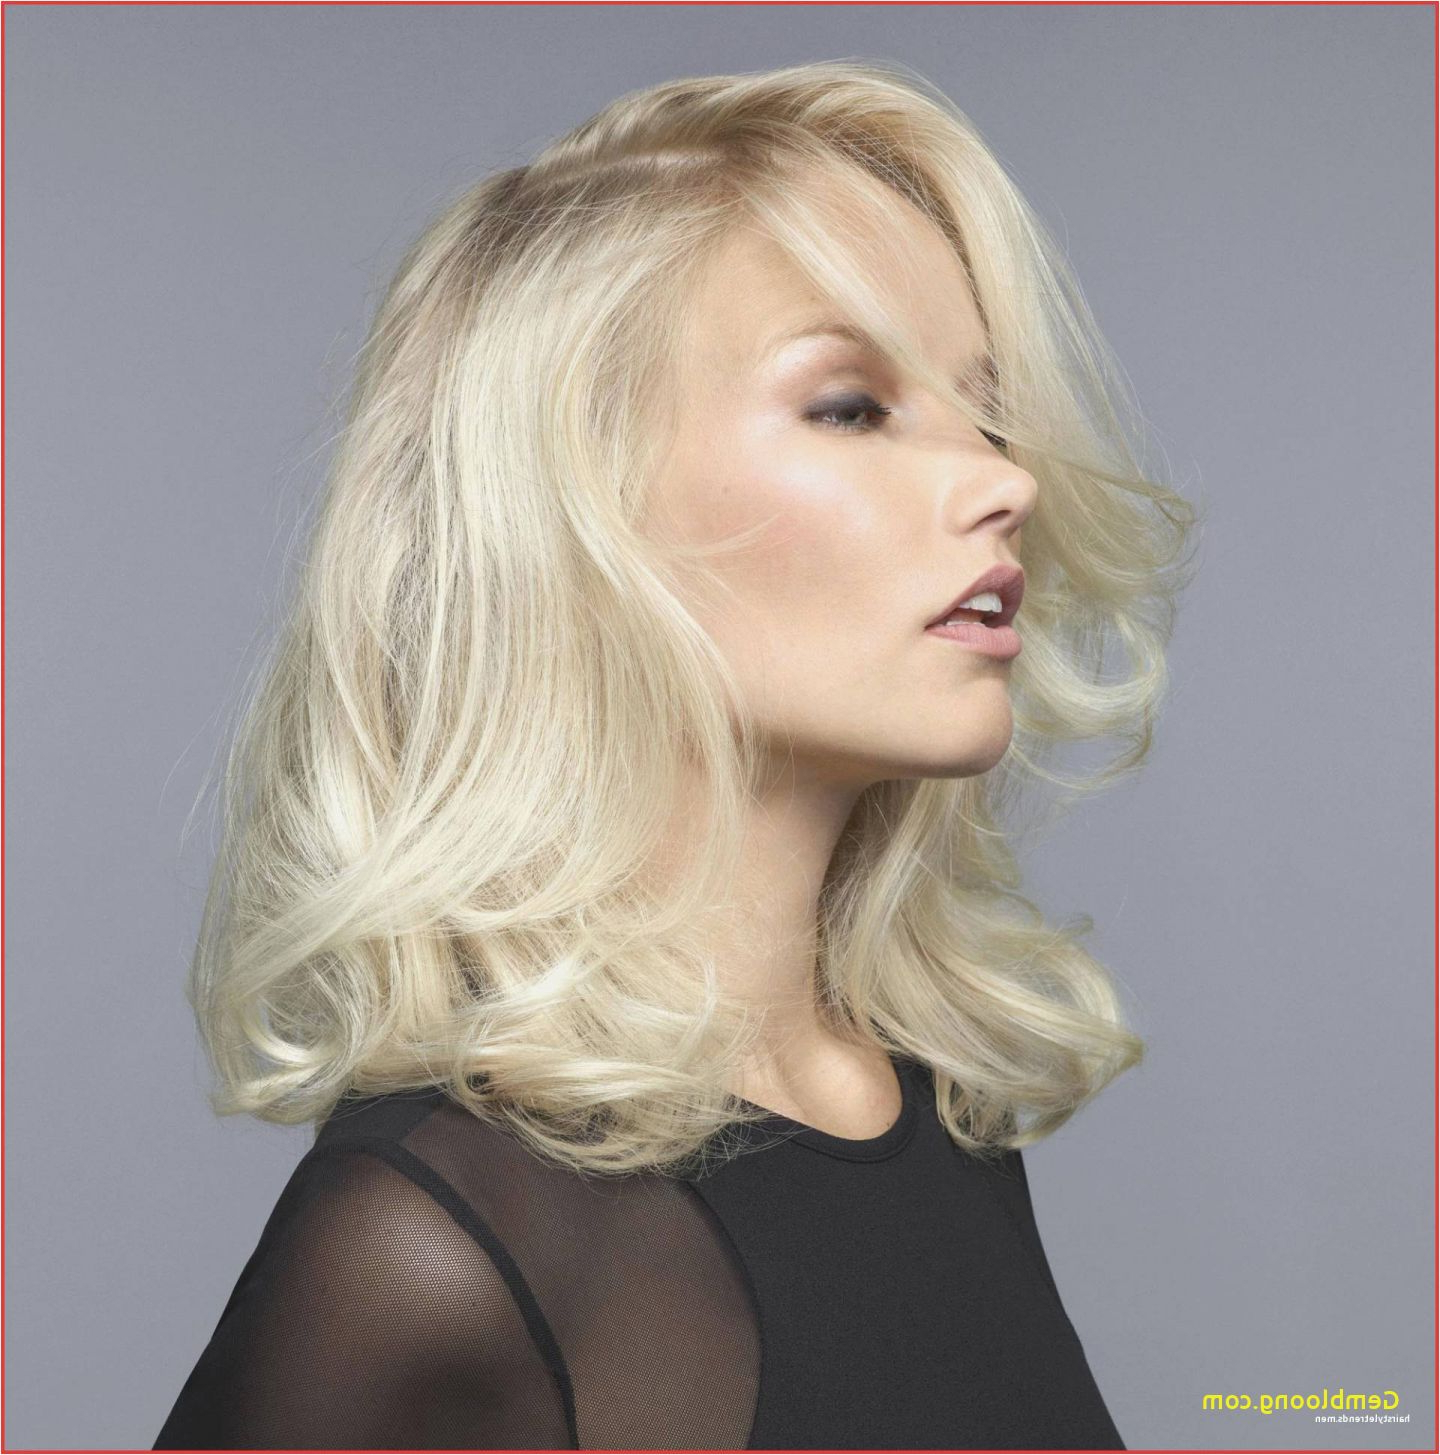 Preferred Medium Hairstyles That Make You Look Younger For ✓ 29 Delicate Short Medium Hairstyles To Make You Look Younger ❗ (View 13 of 20)